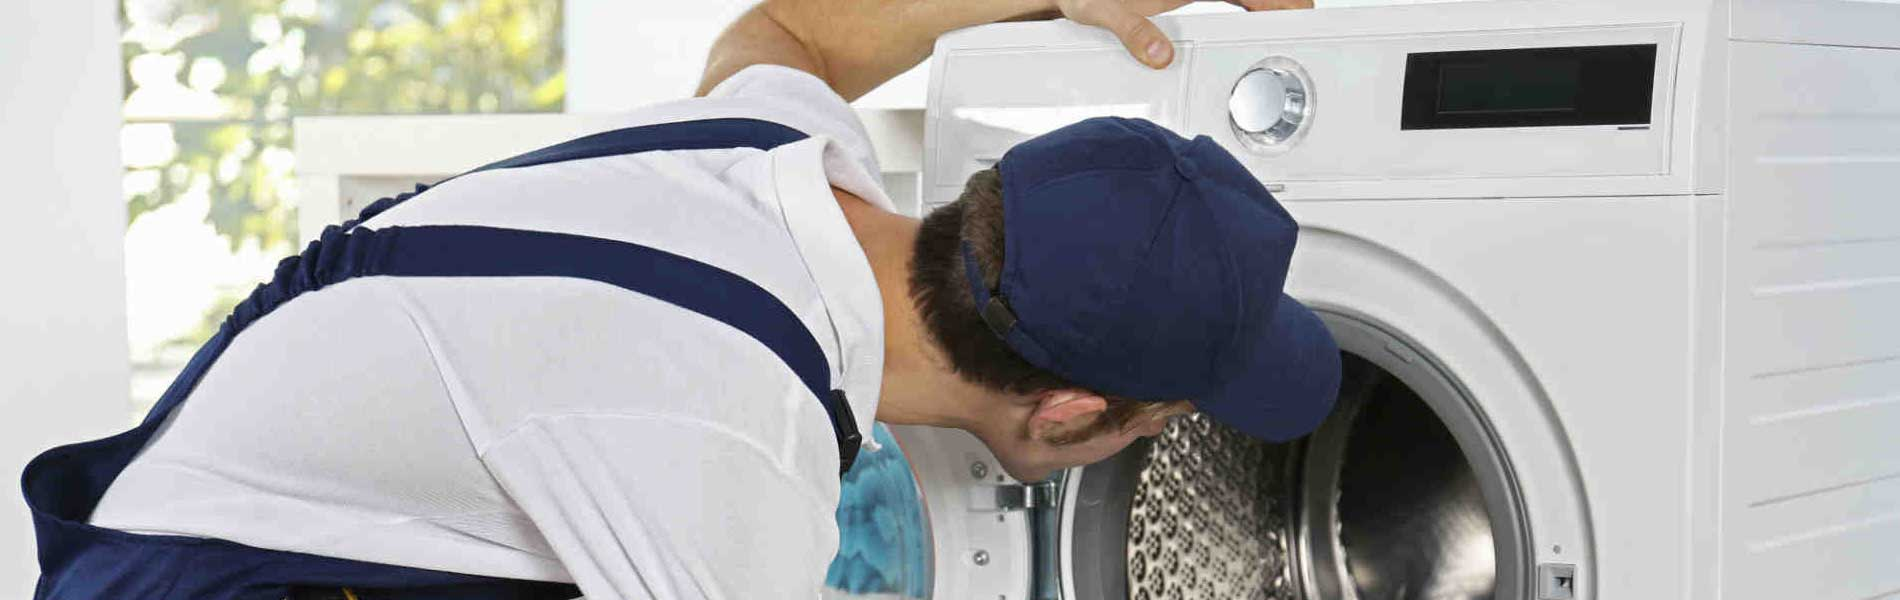 Godrej Washing Machine Mechanic in Meenambakkam